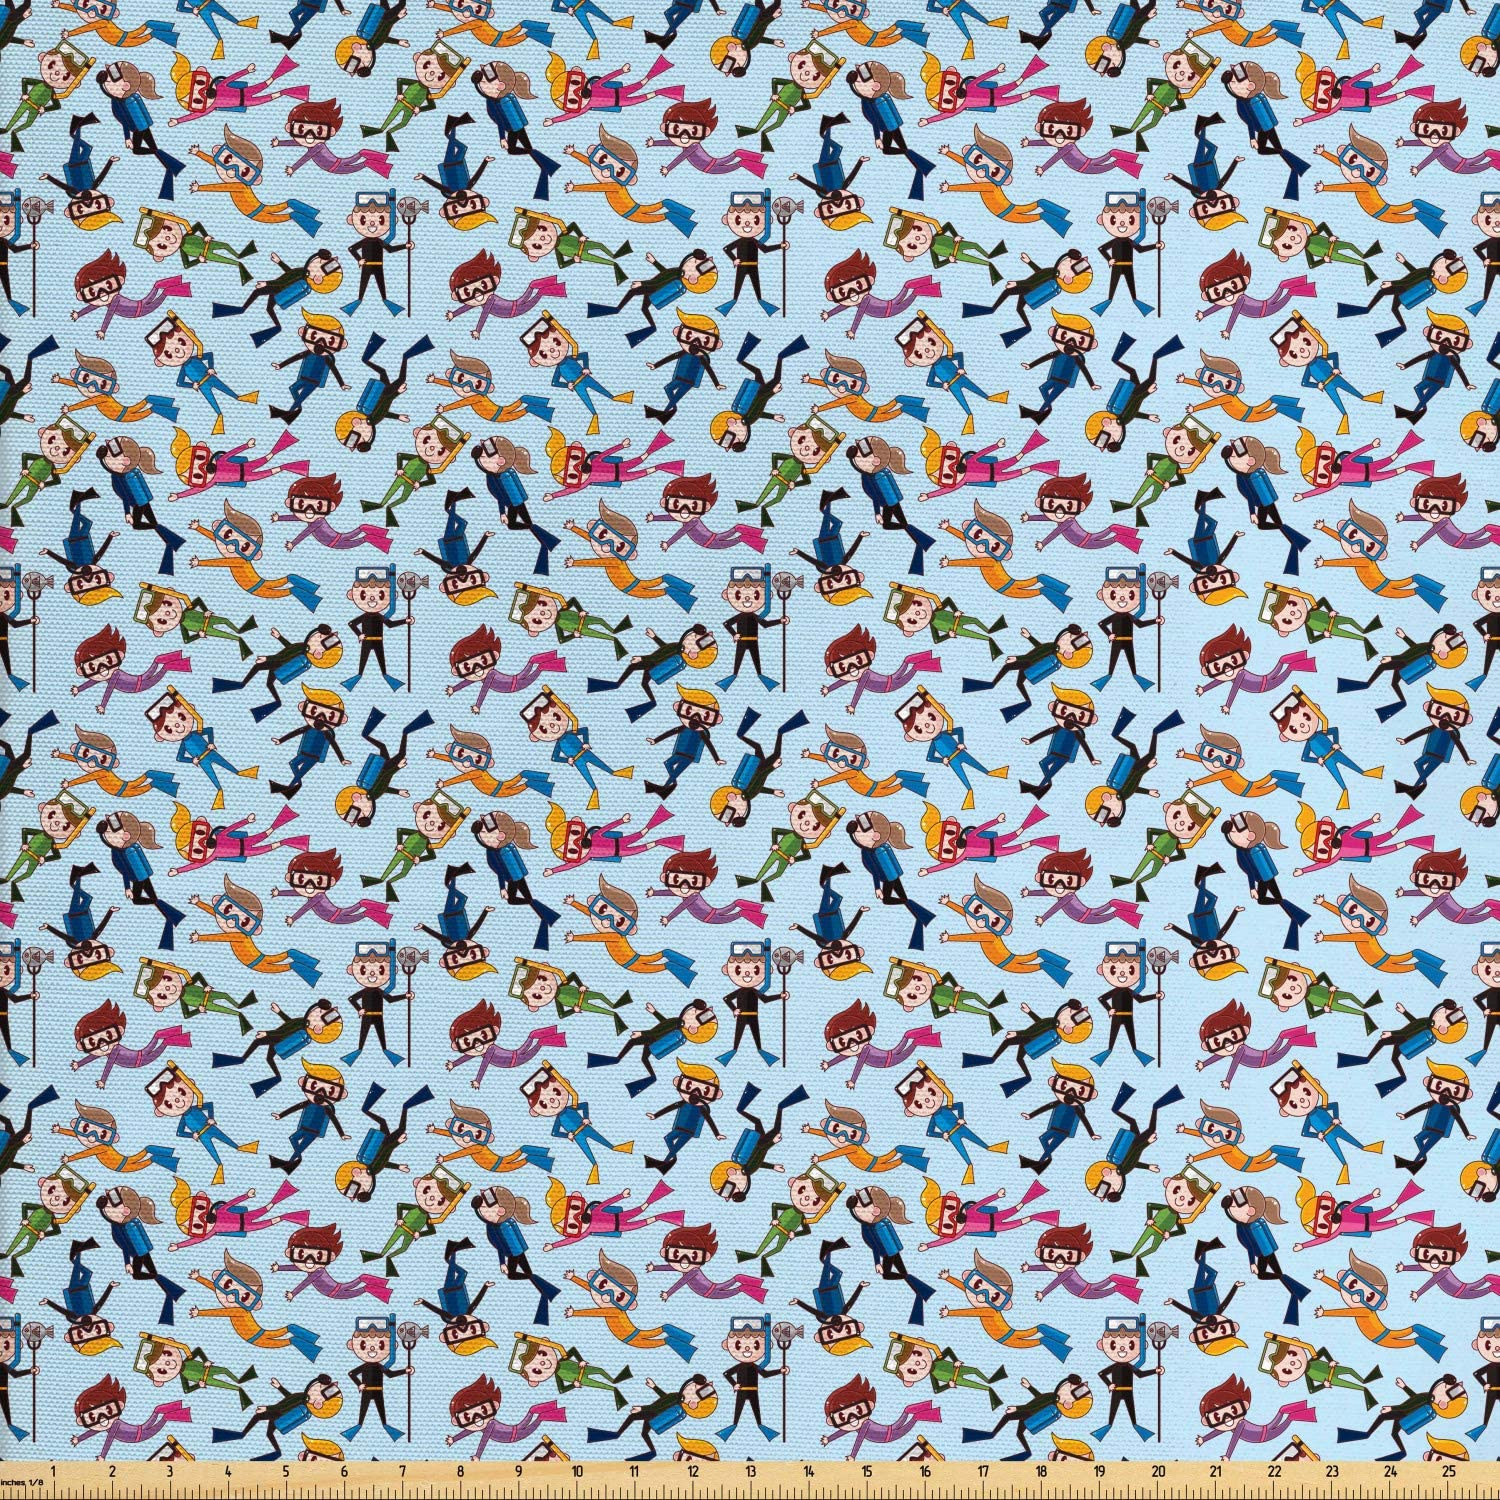 Lunarable Scuba Fabric by The Yard, Cartoon Children Diver Swimming and Catching Fish Aquatic Hobby Arrangement, Decorative Fabric for Upholstery and Home Accents, 1 Yard, Pale Blue